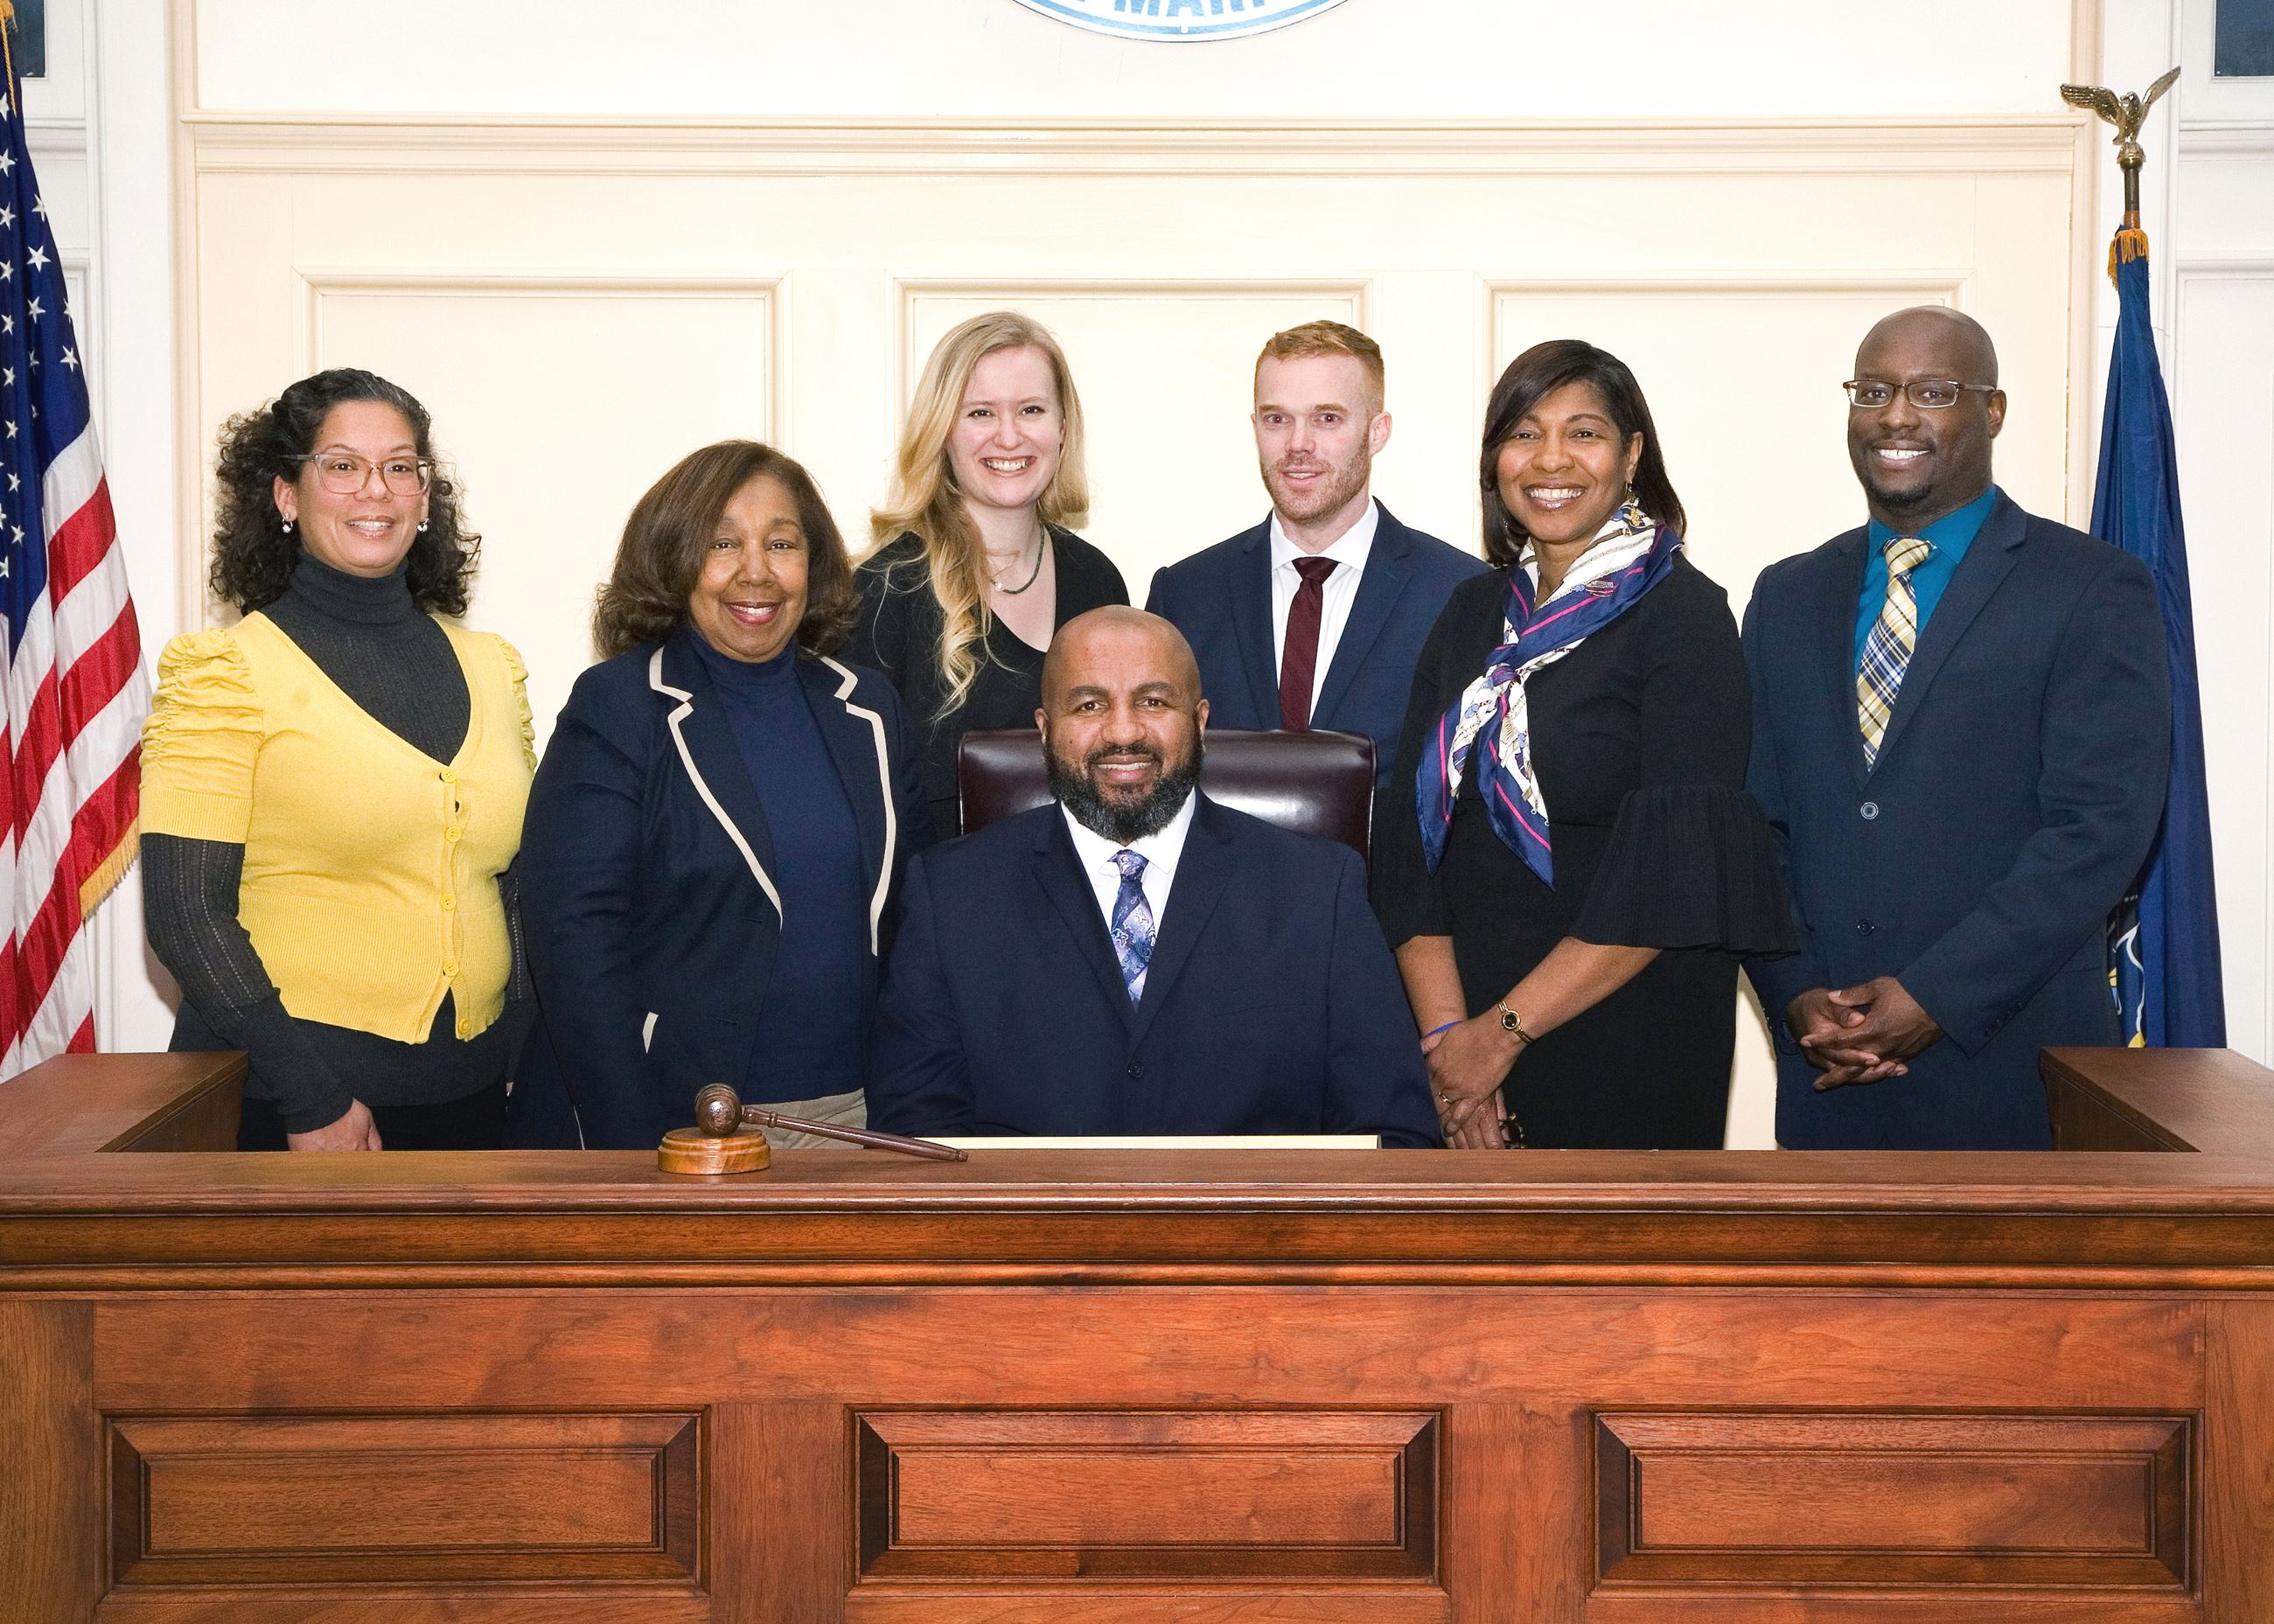 Official 2020 council photo